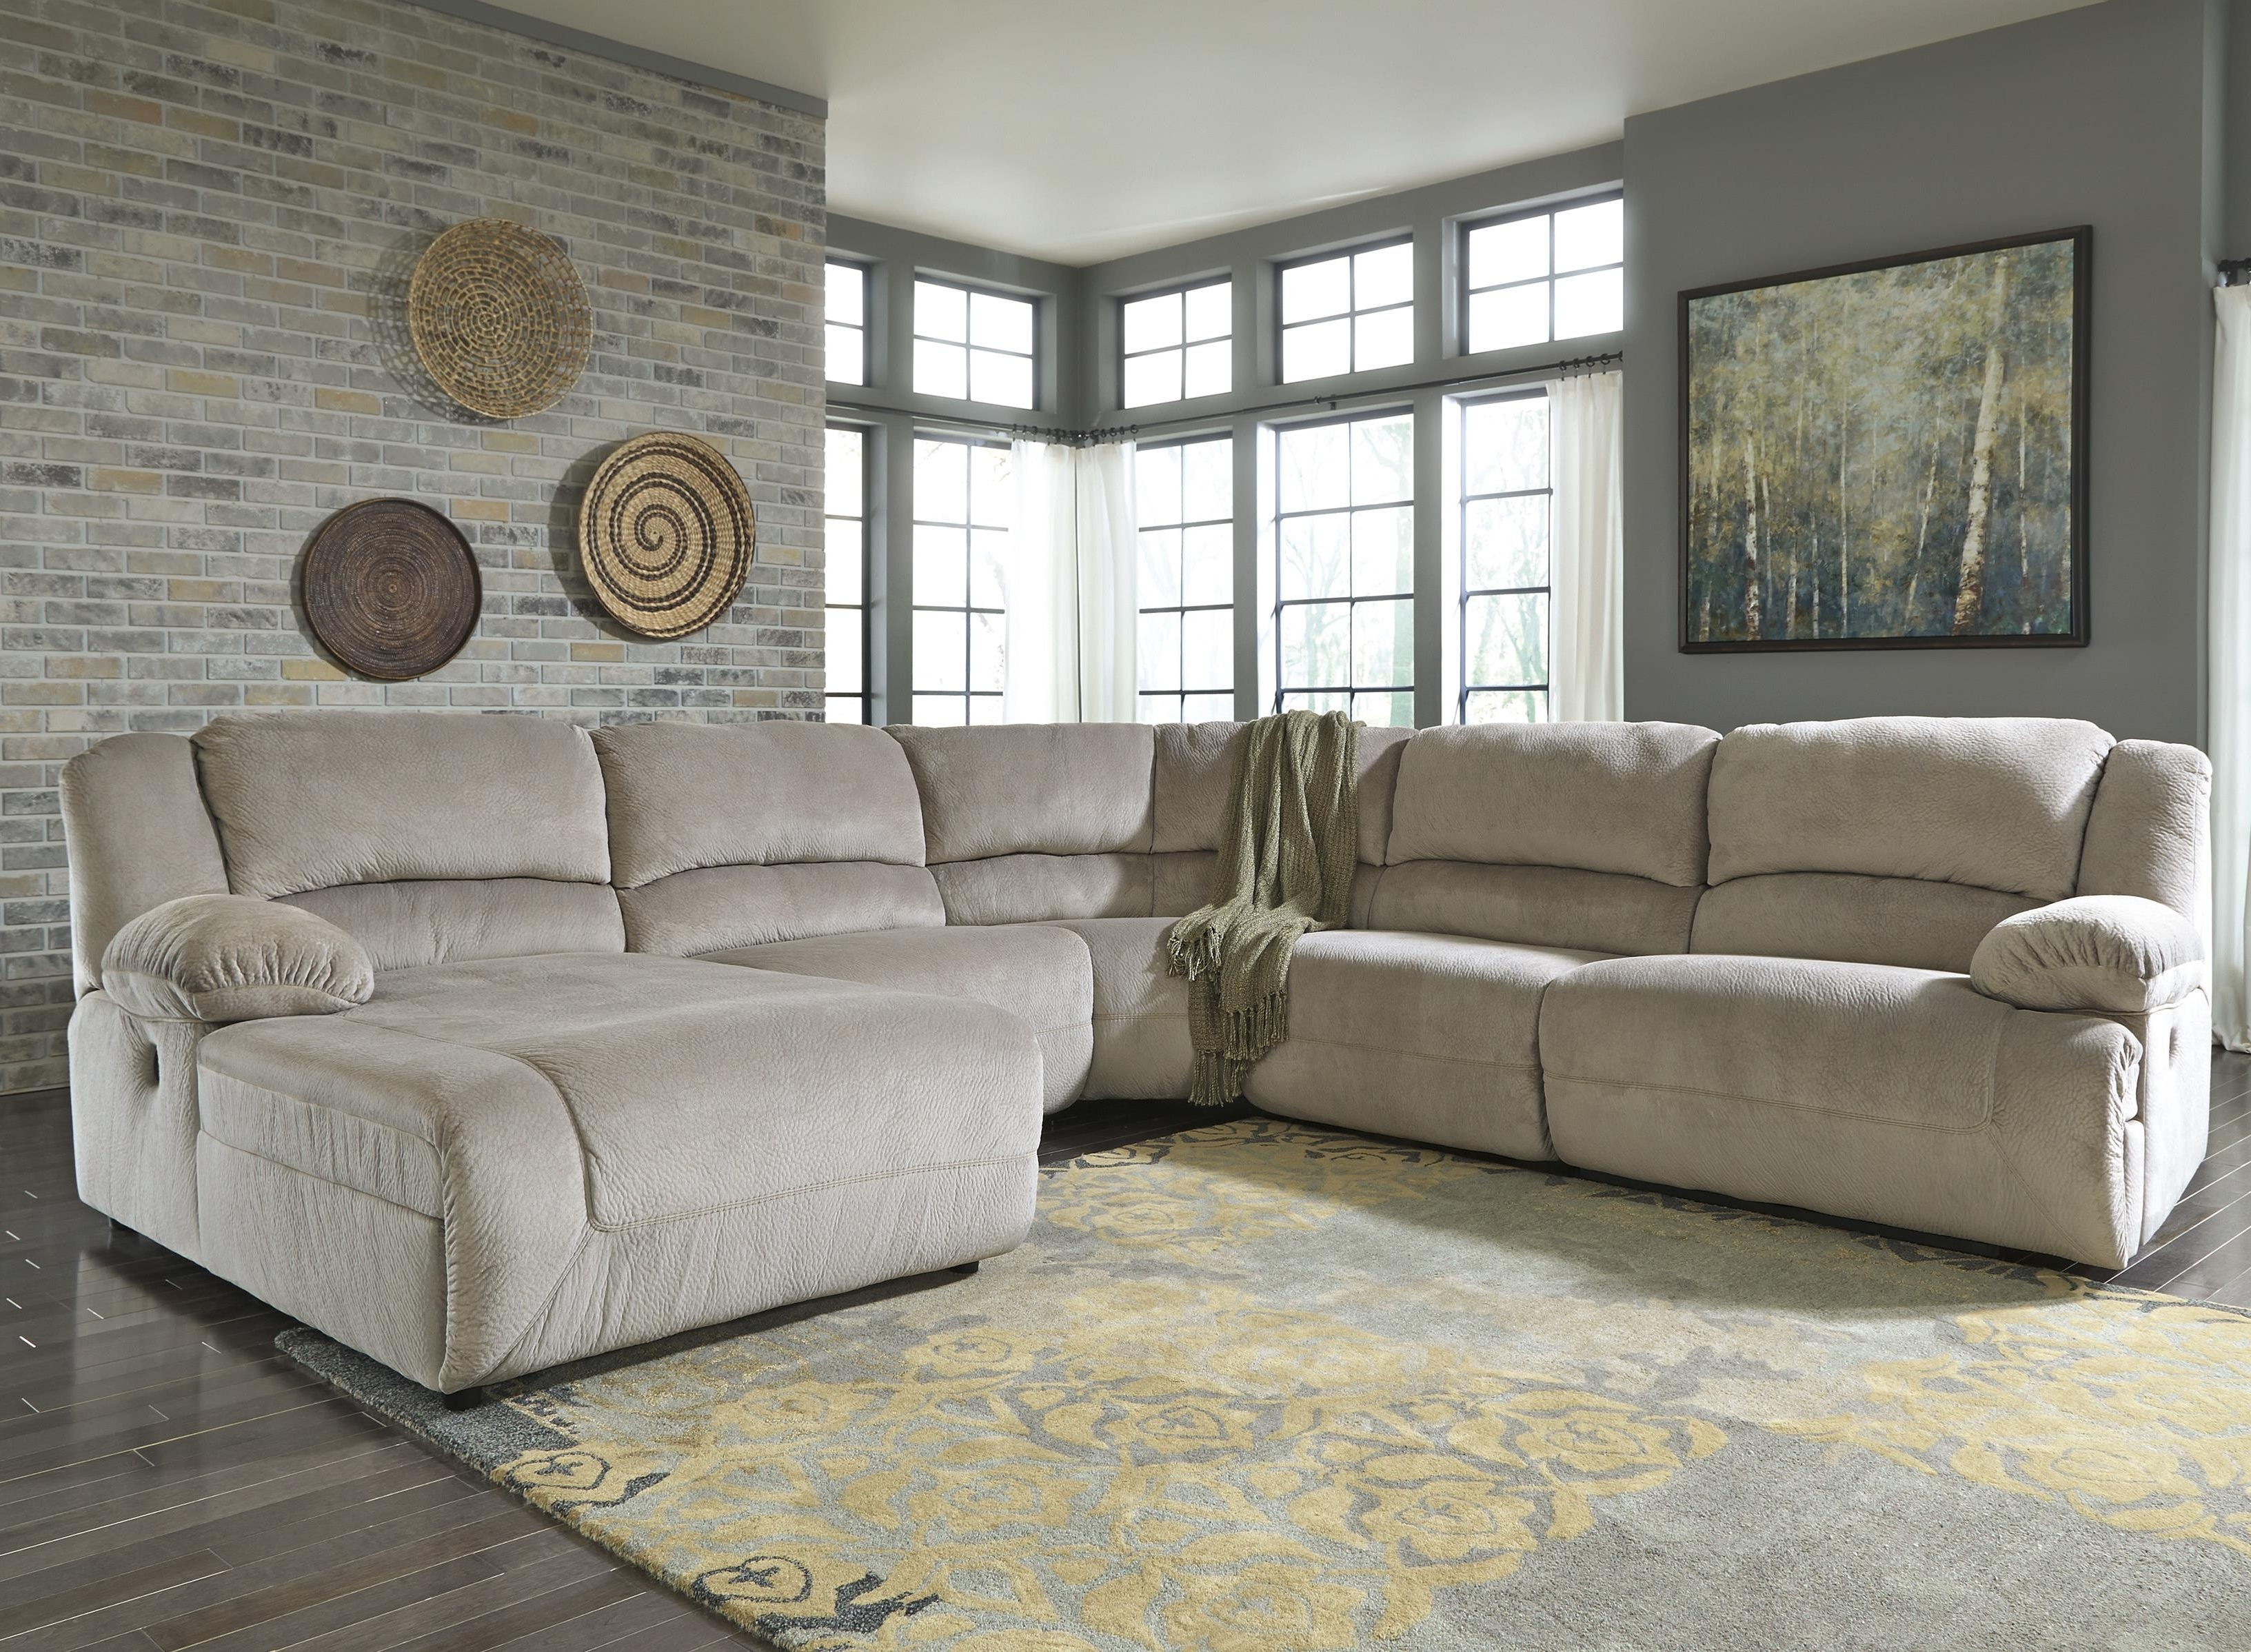 Harrisburg Pa Sectional Sofas Throughout Most Up To Date Power Reclining Sectional With Right Press Back Chaise (View 2 of 20)